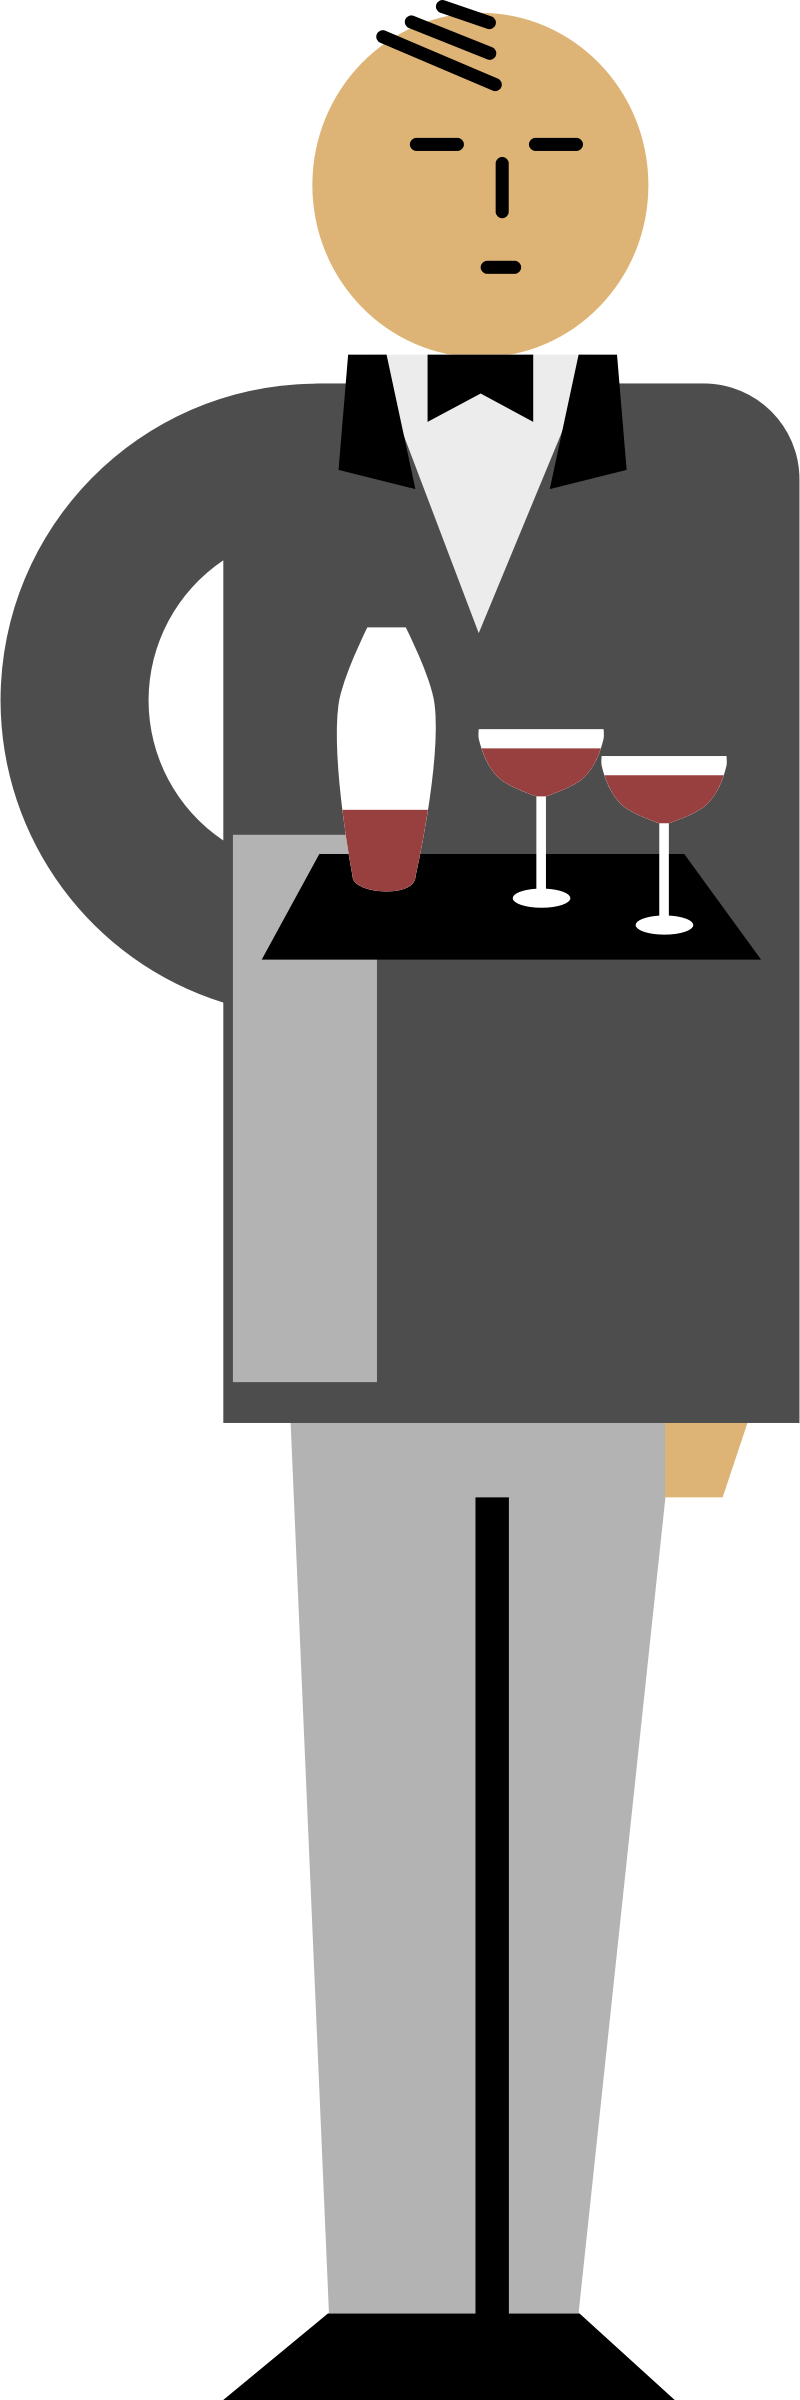 Wine waiter by Firkin